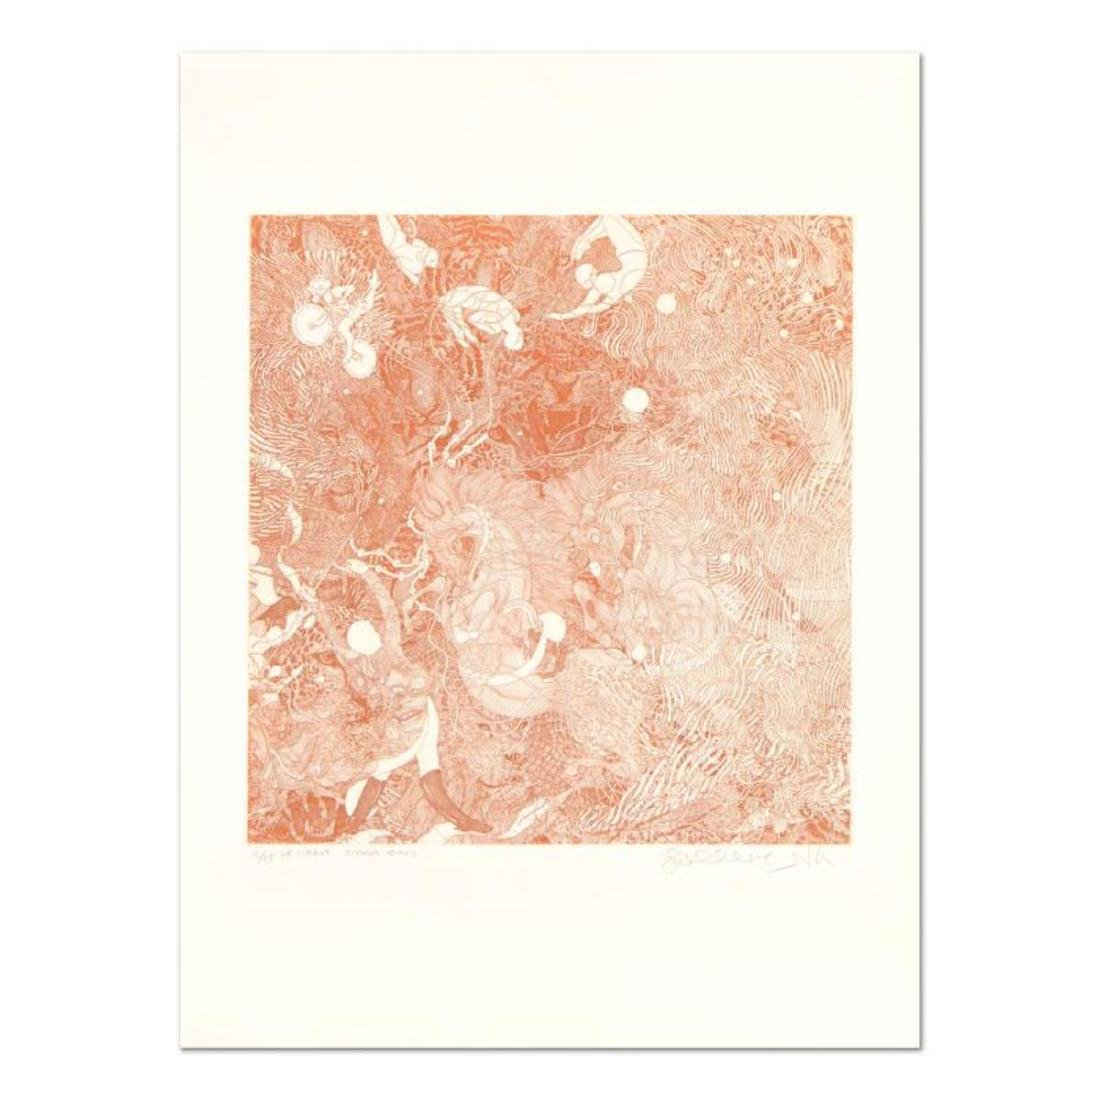 """Guillaume Azoulay - """"Le Circue (Sienna)"""" Limited"""